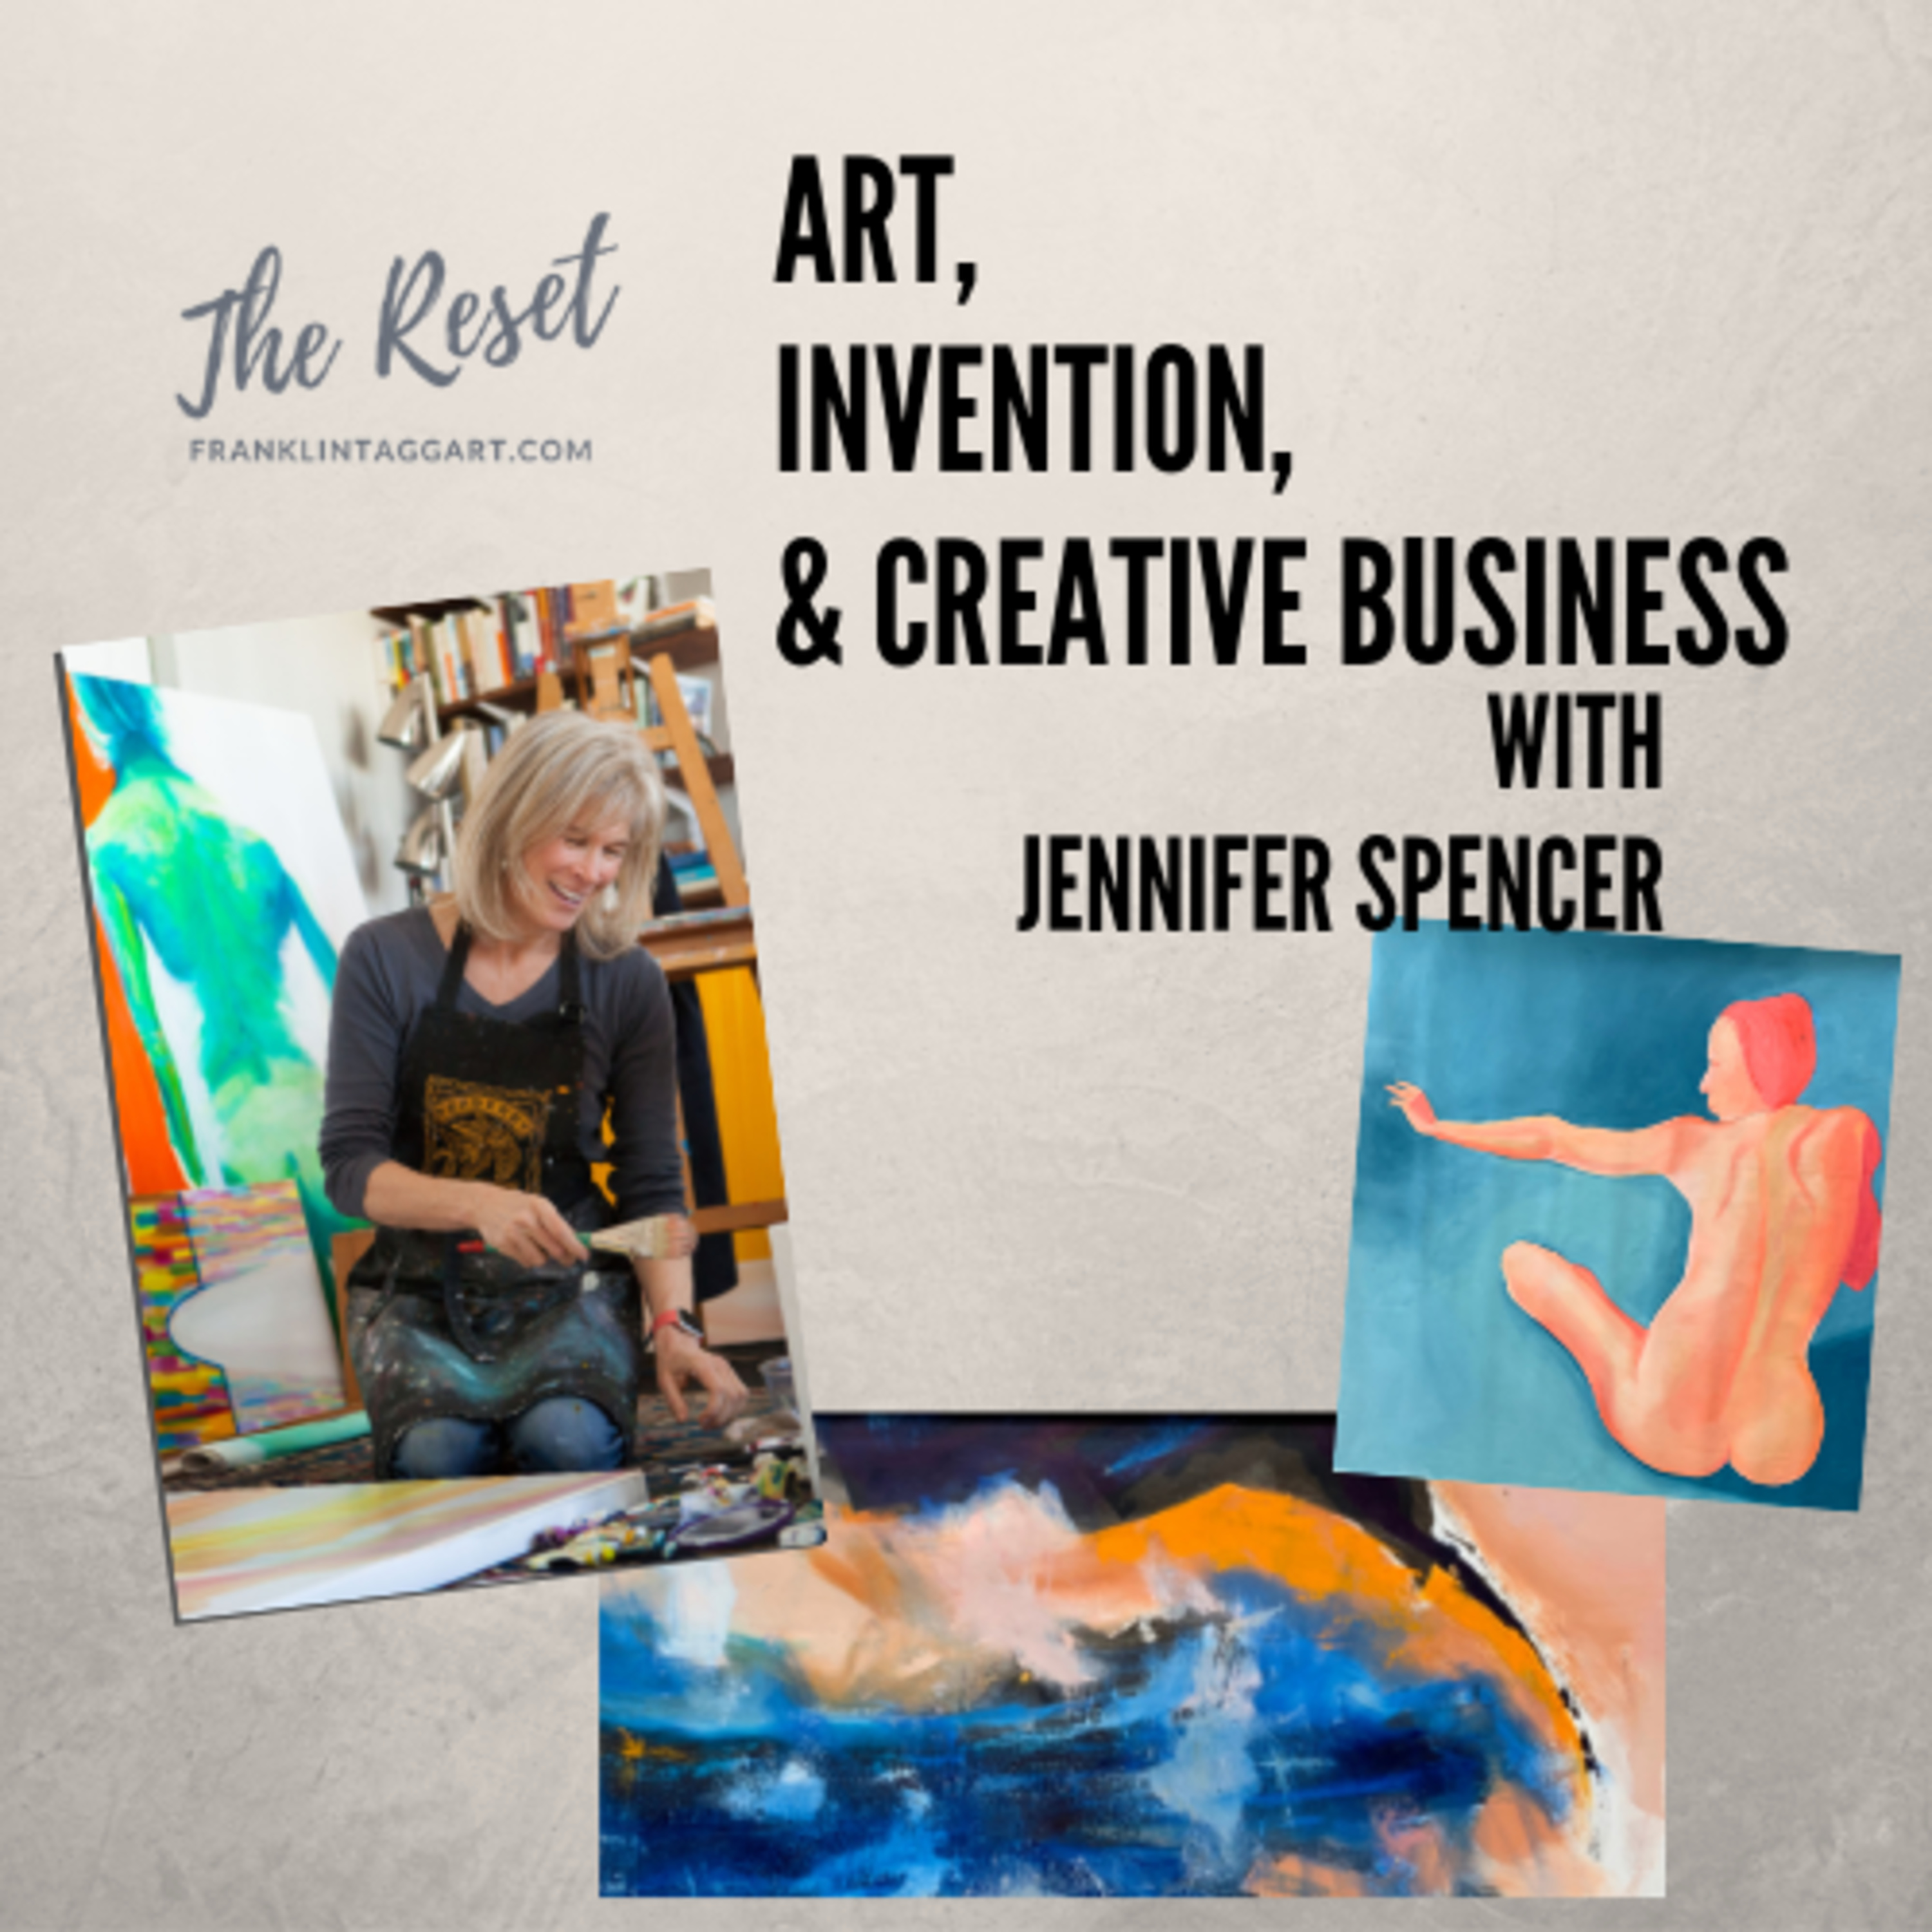 Art, Invention, and Creative Business with Jennifer Spencer